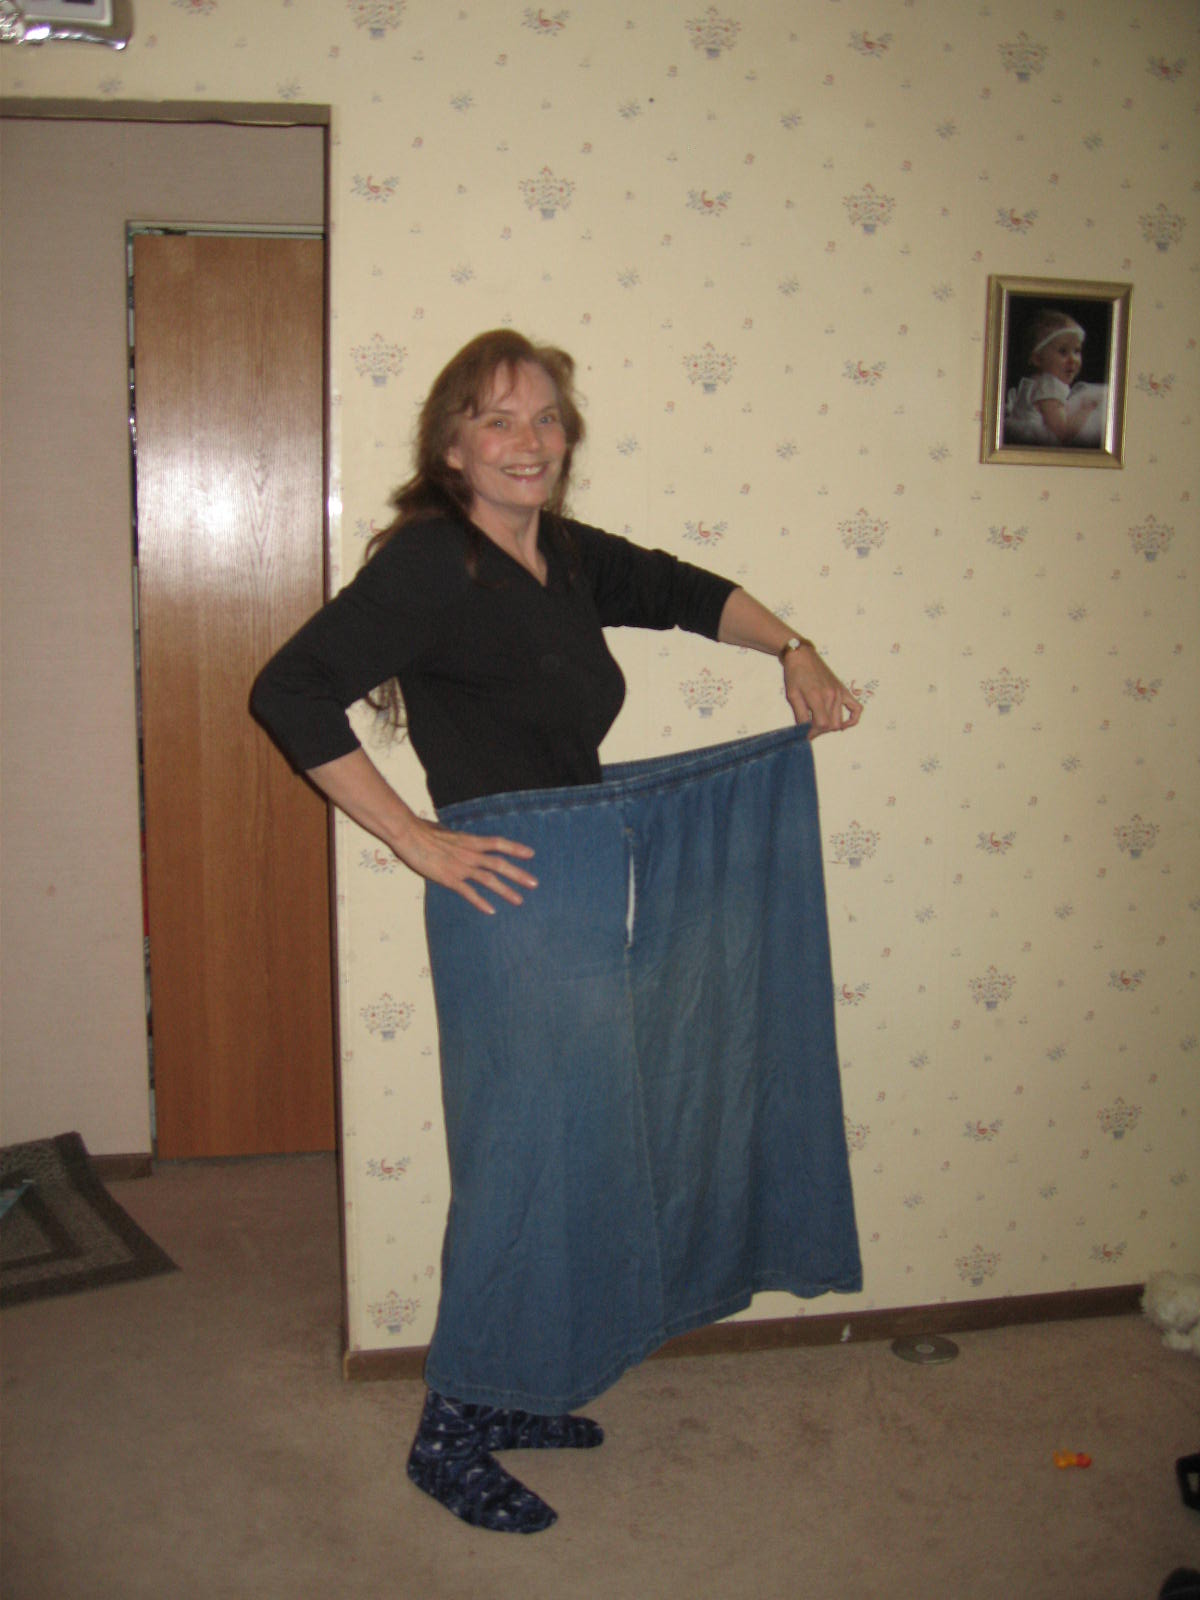 Me in my old 'fat' skirt